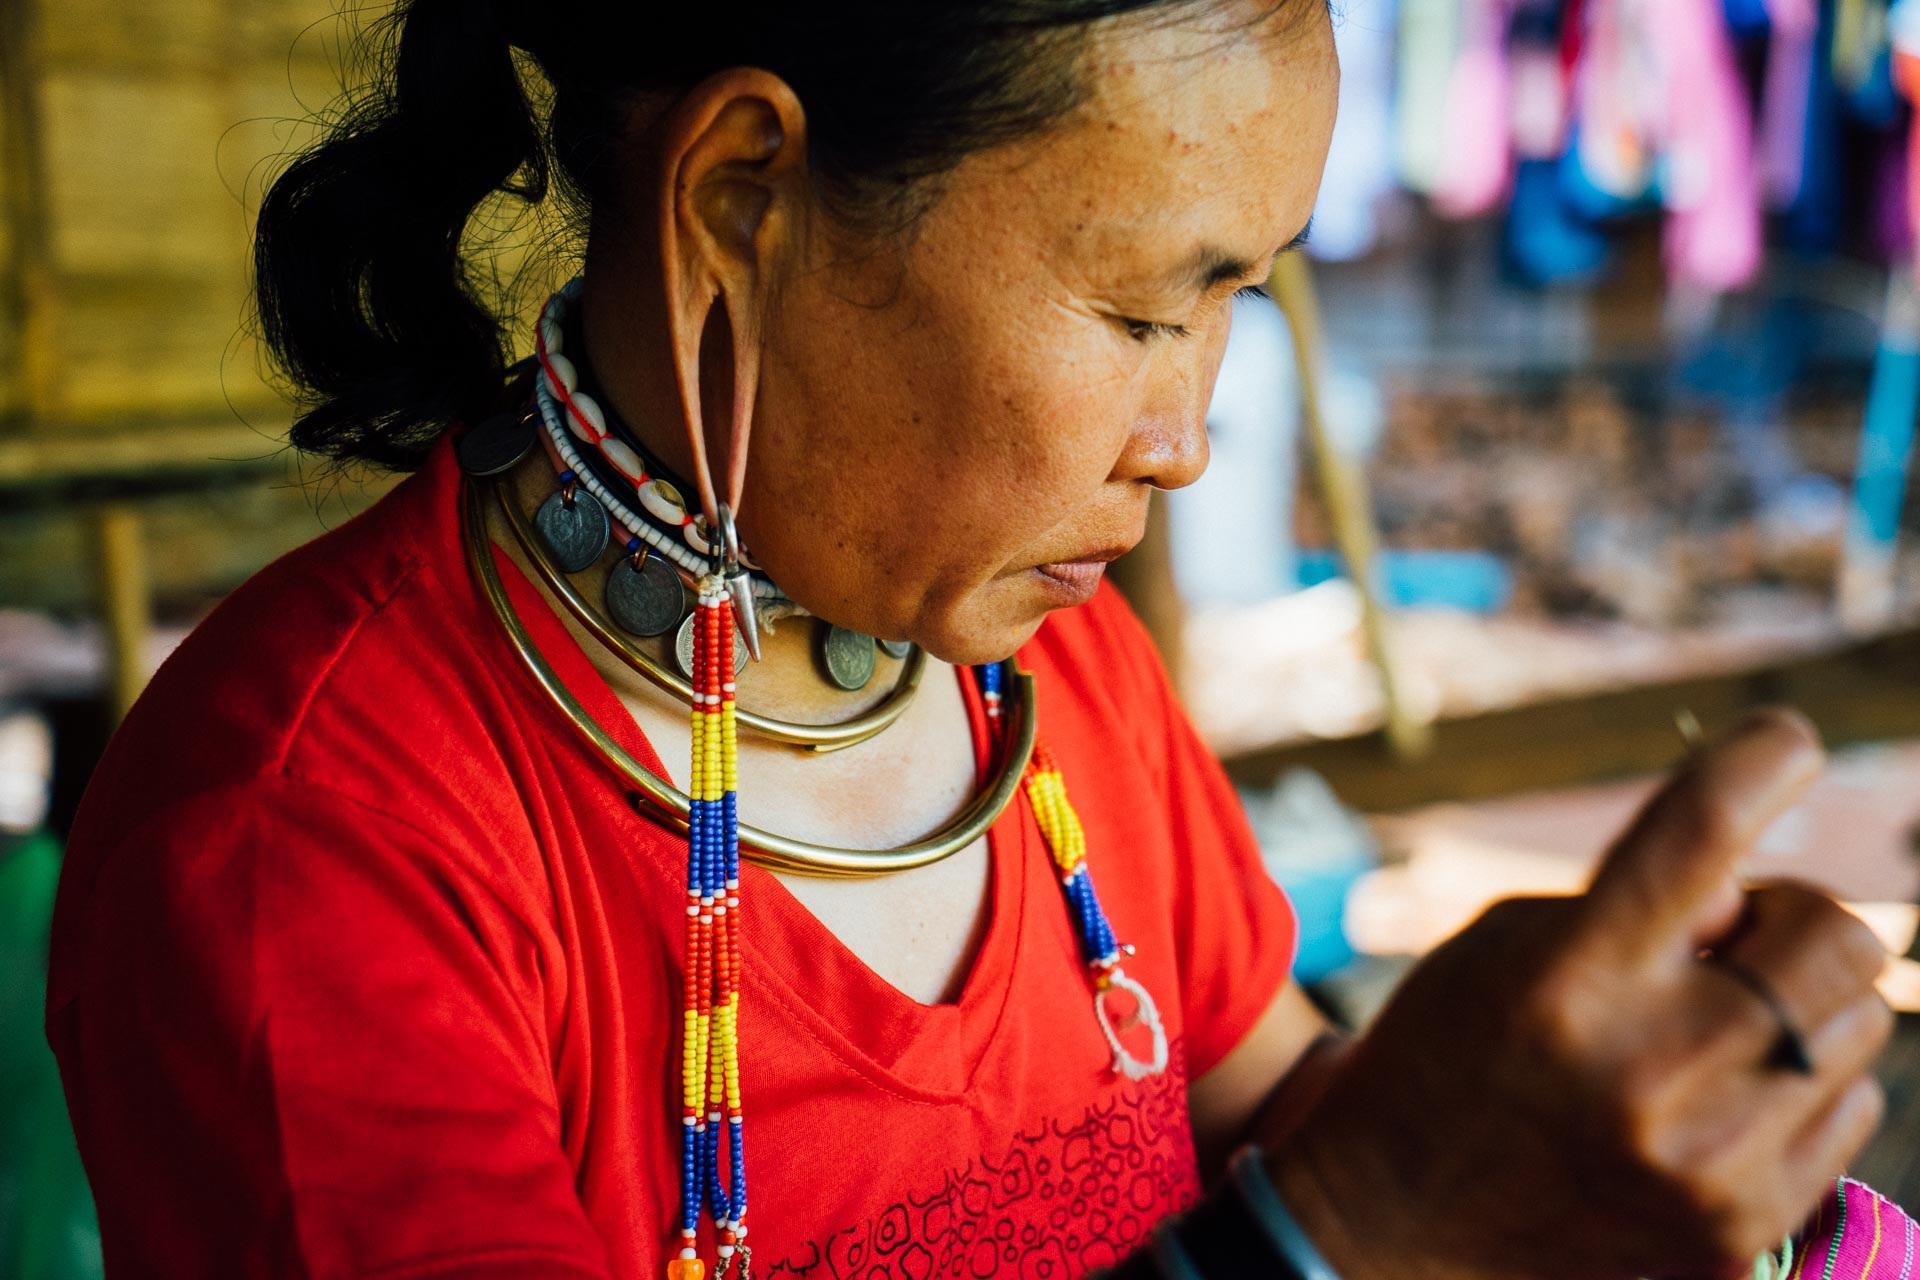 Thai woman threading beads in the traditional artisan way.